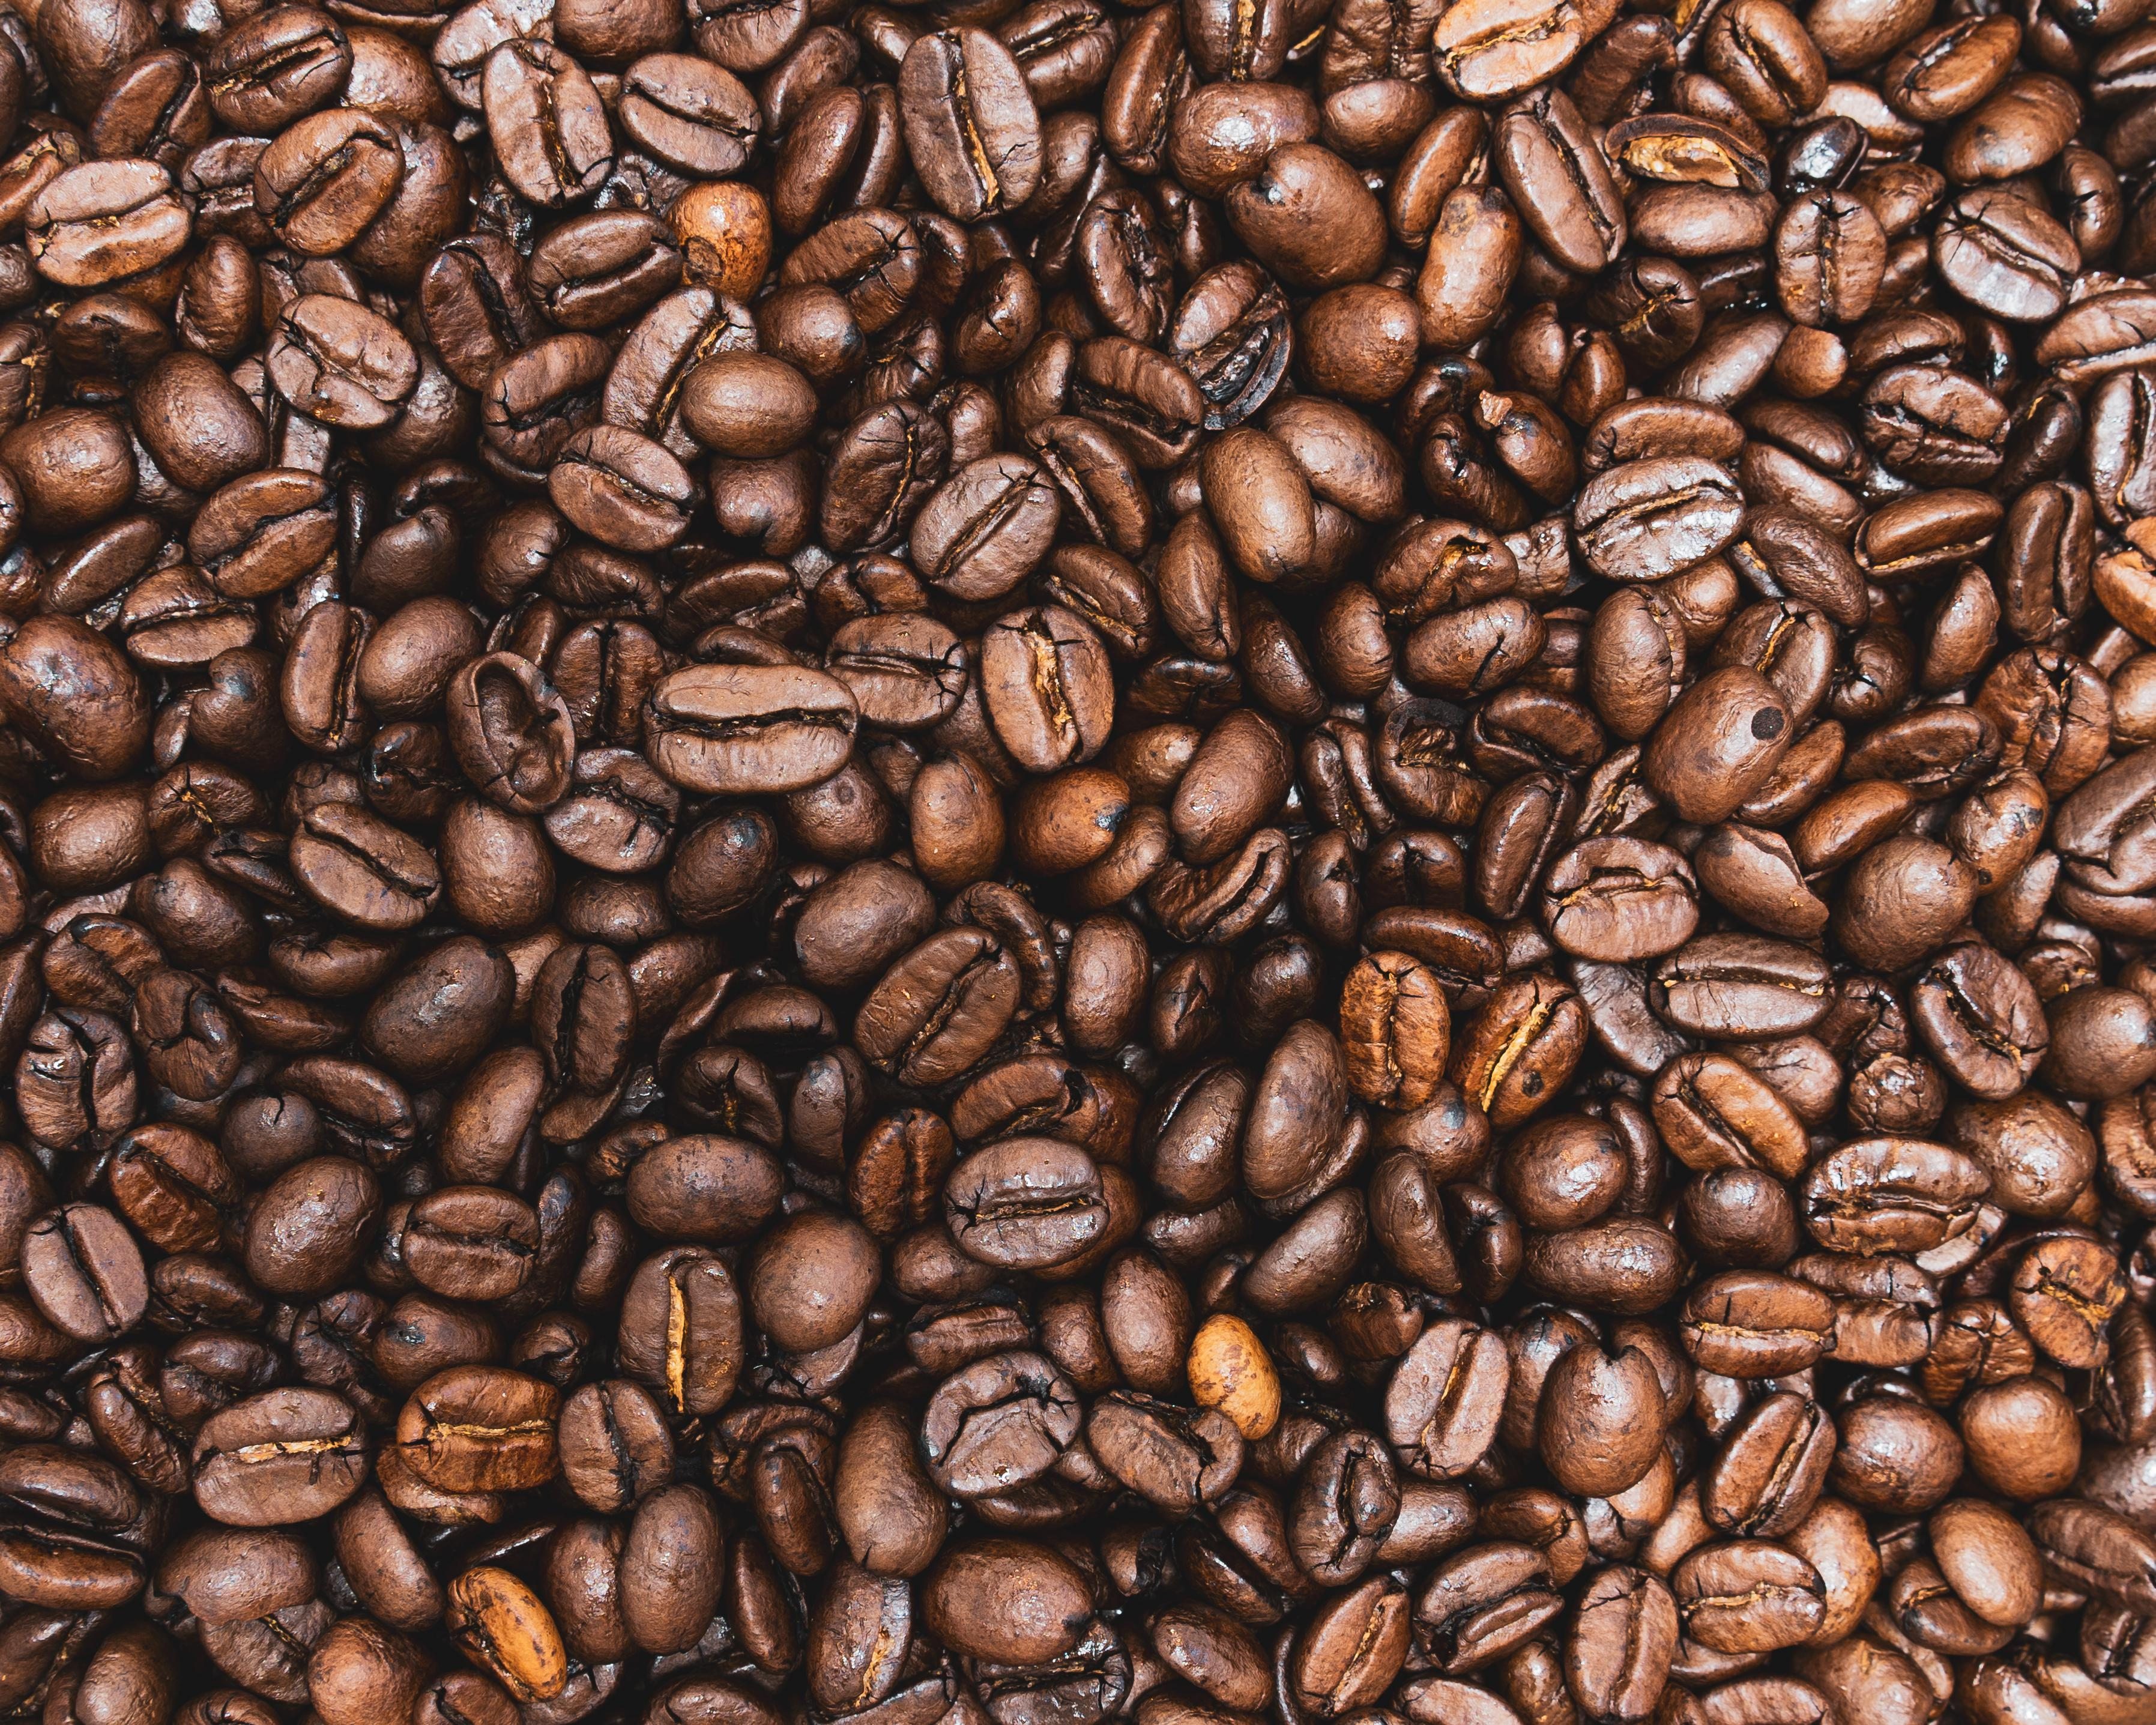 Coffee 4k Wallpapers For Your Desktop Or Mobile Screen Free And Easy To Download